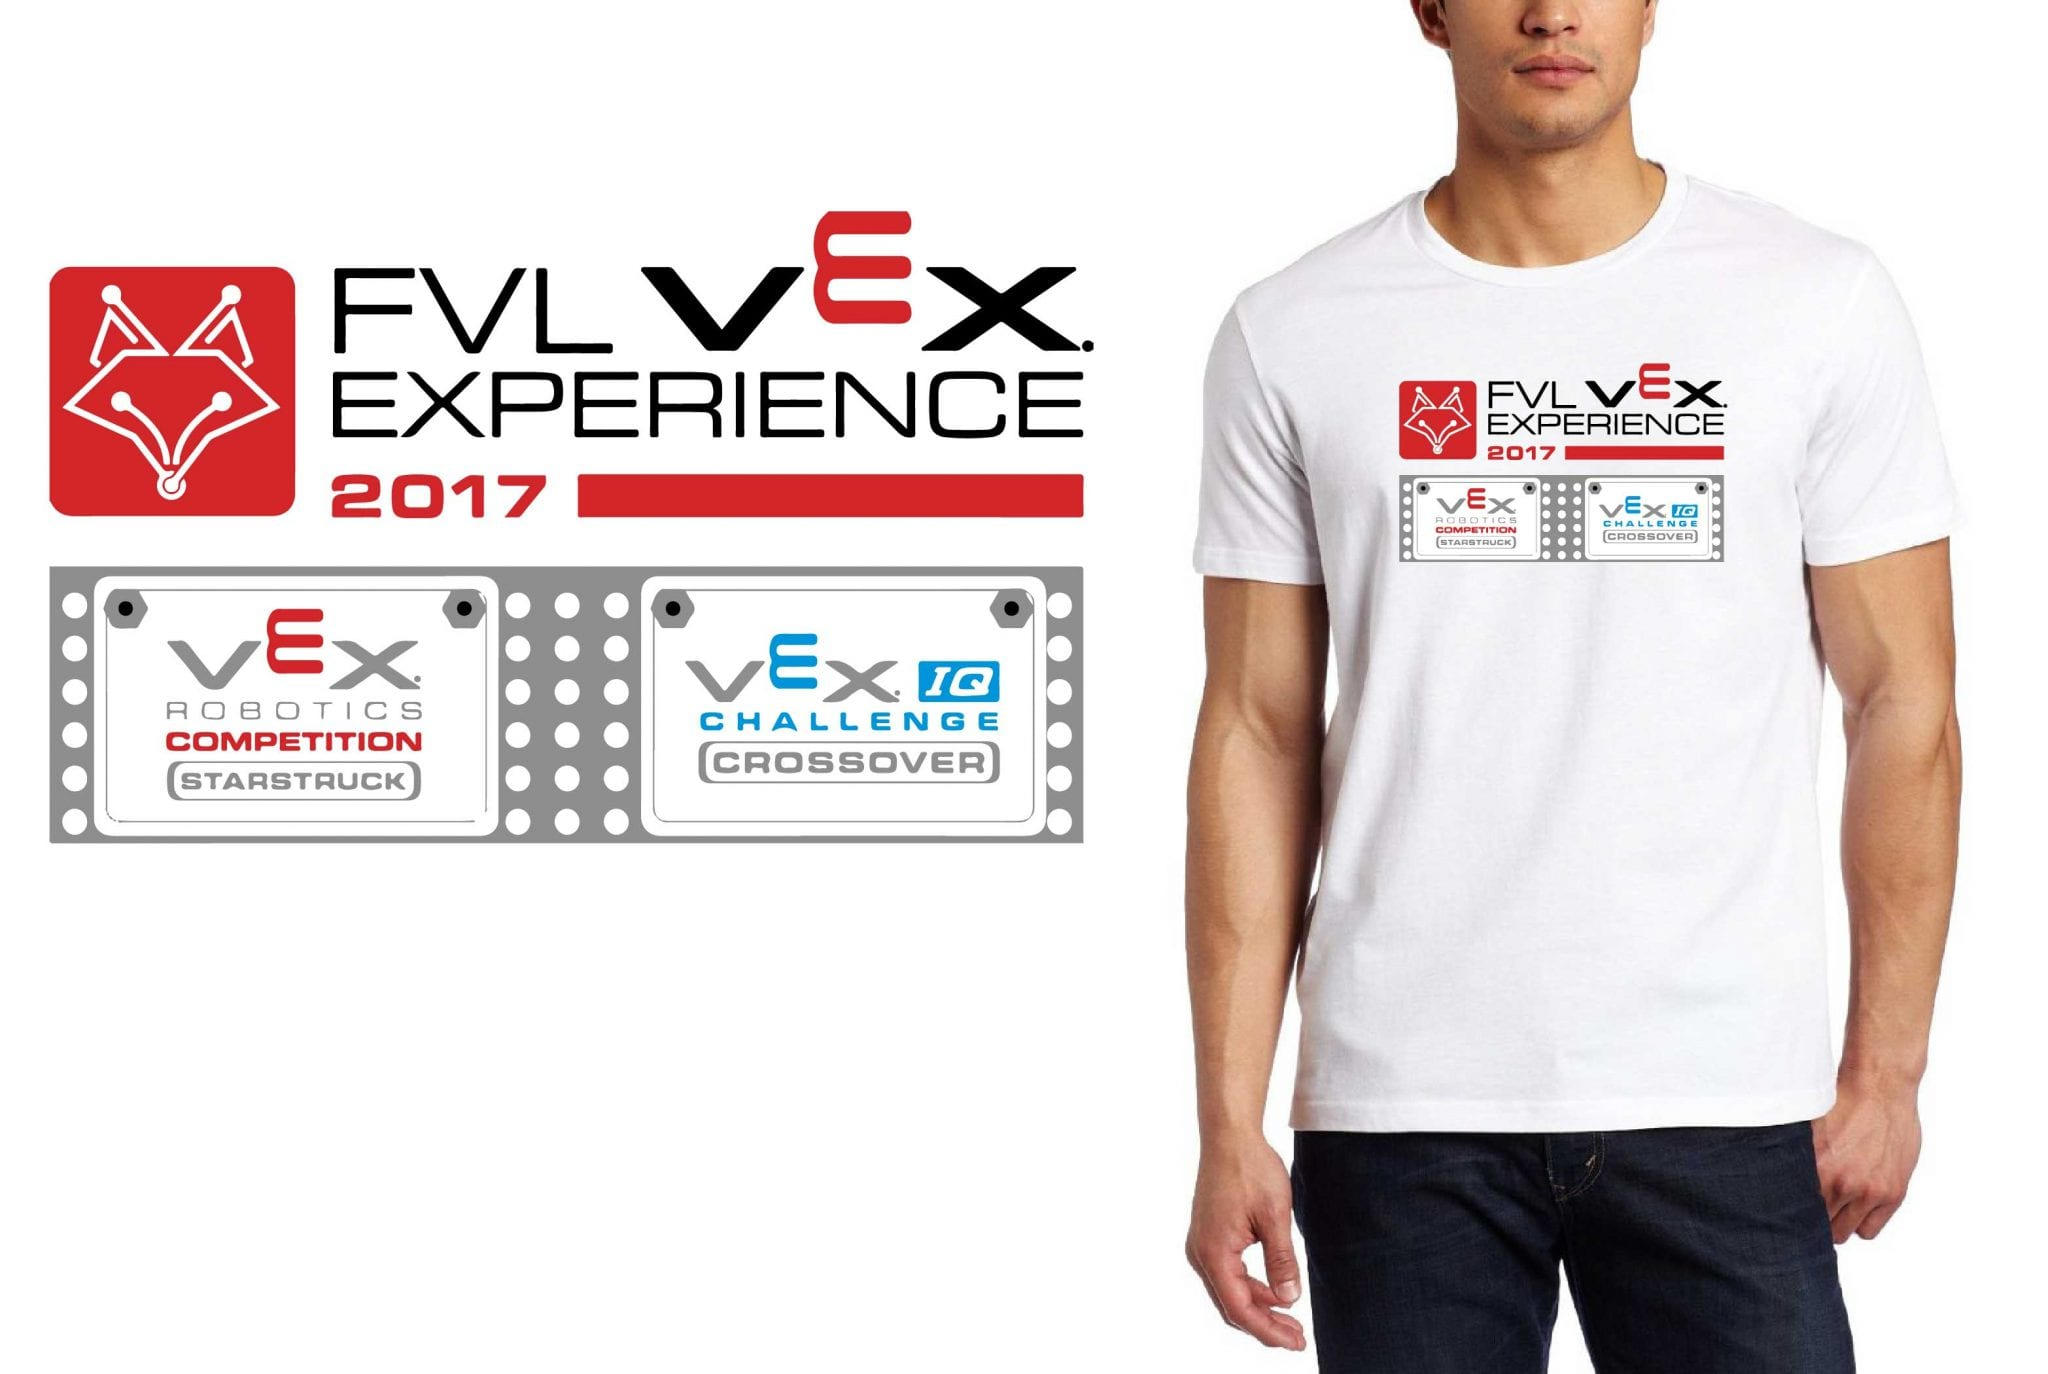 2017 FVL VEX Experience vector logo design for robotics t-shirt UrArtStudio